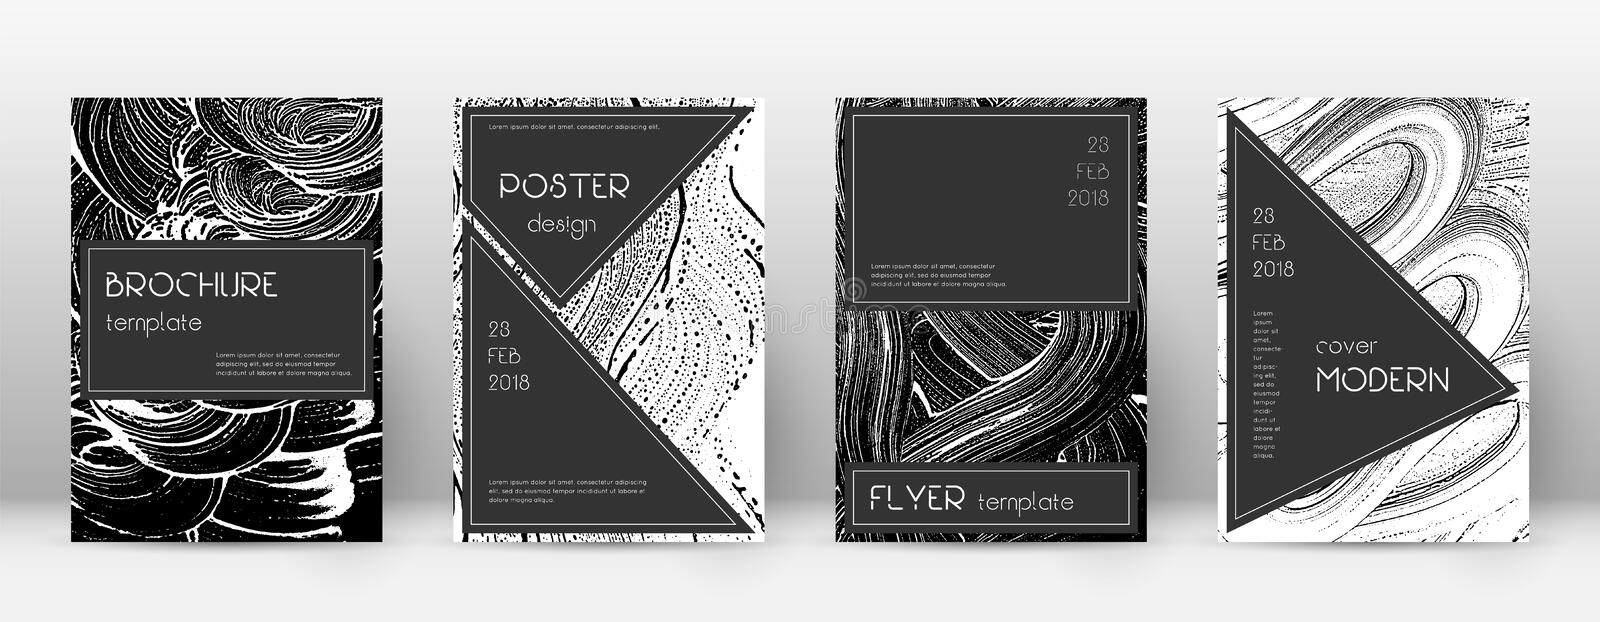 Cover page design template. Black brochure layout. Beauteous trendy abstract cover page. Black and white grunge texture background. Original poster stock illustration